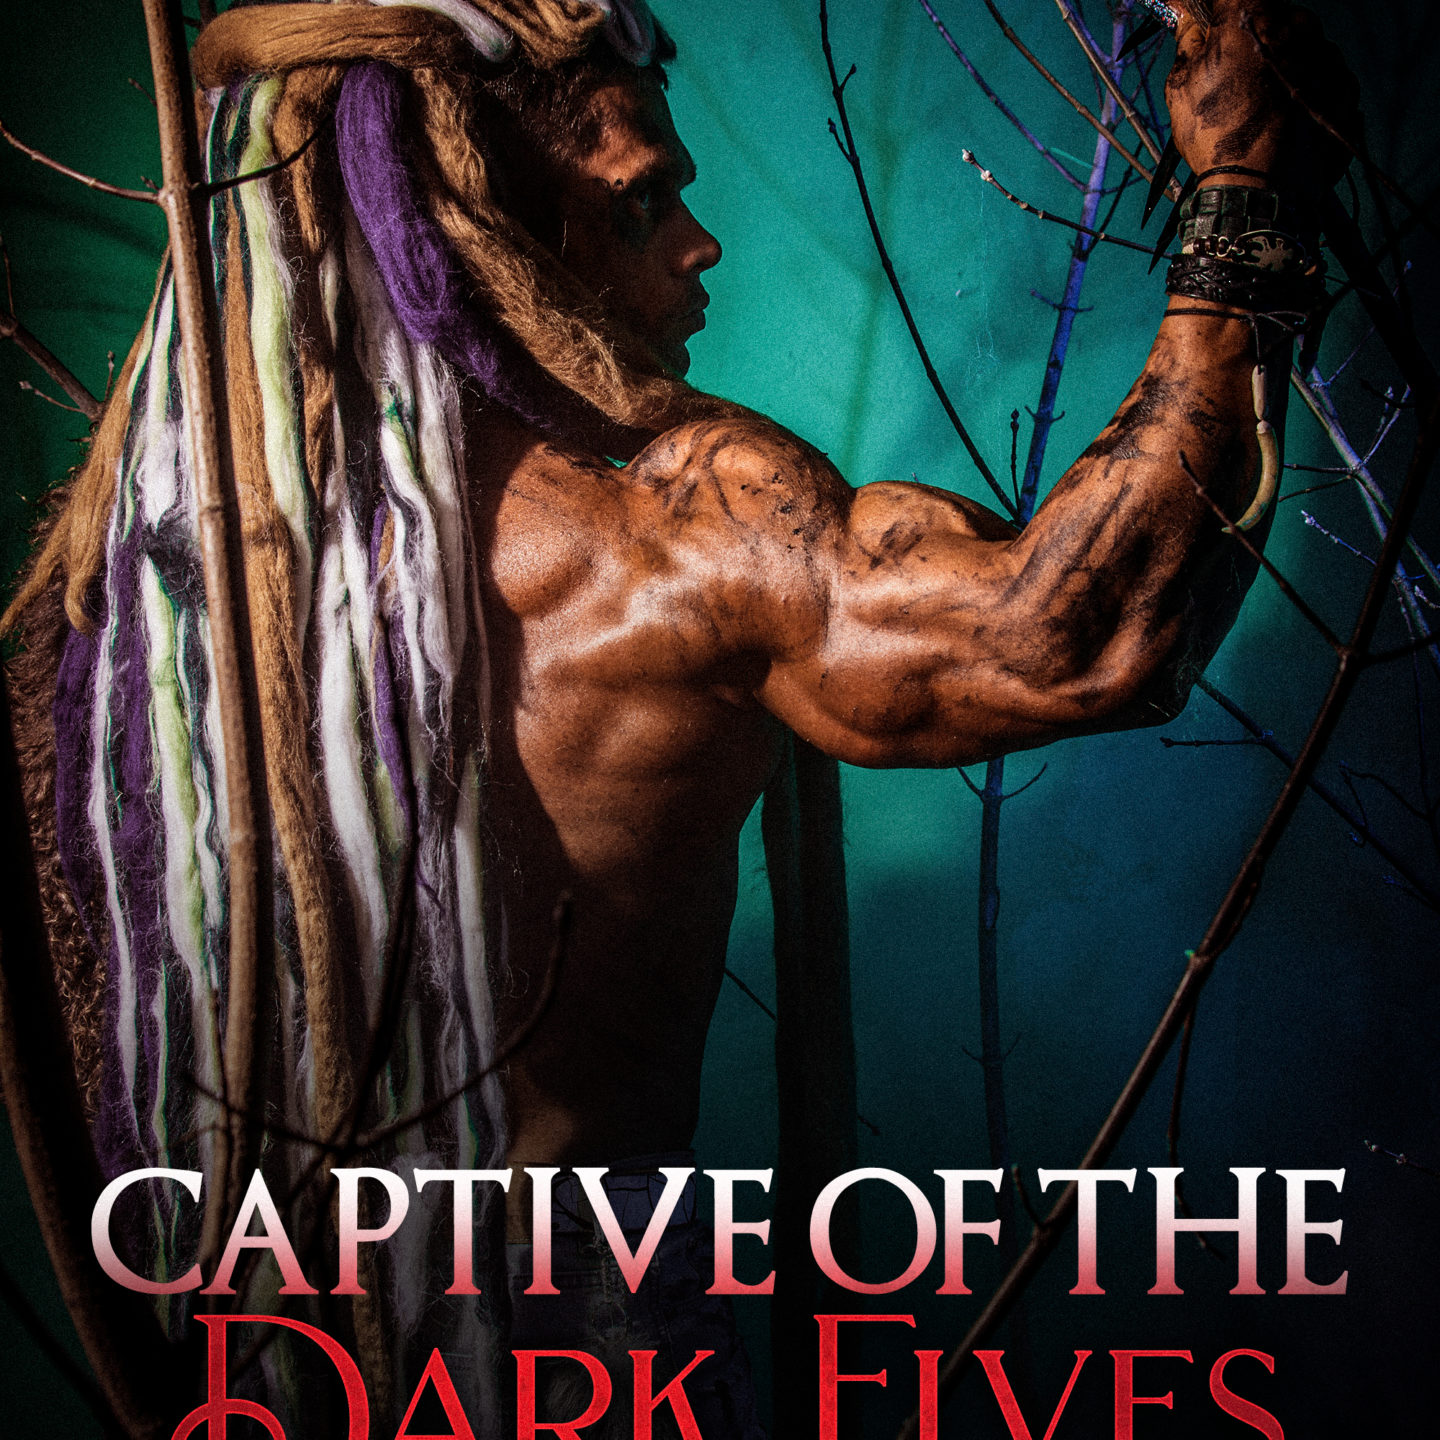 Captive of the Dark Elves